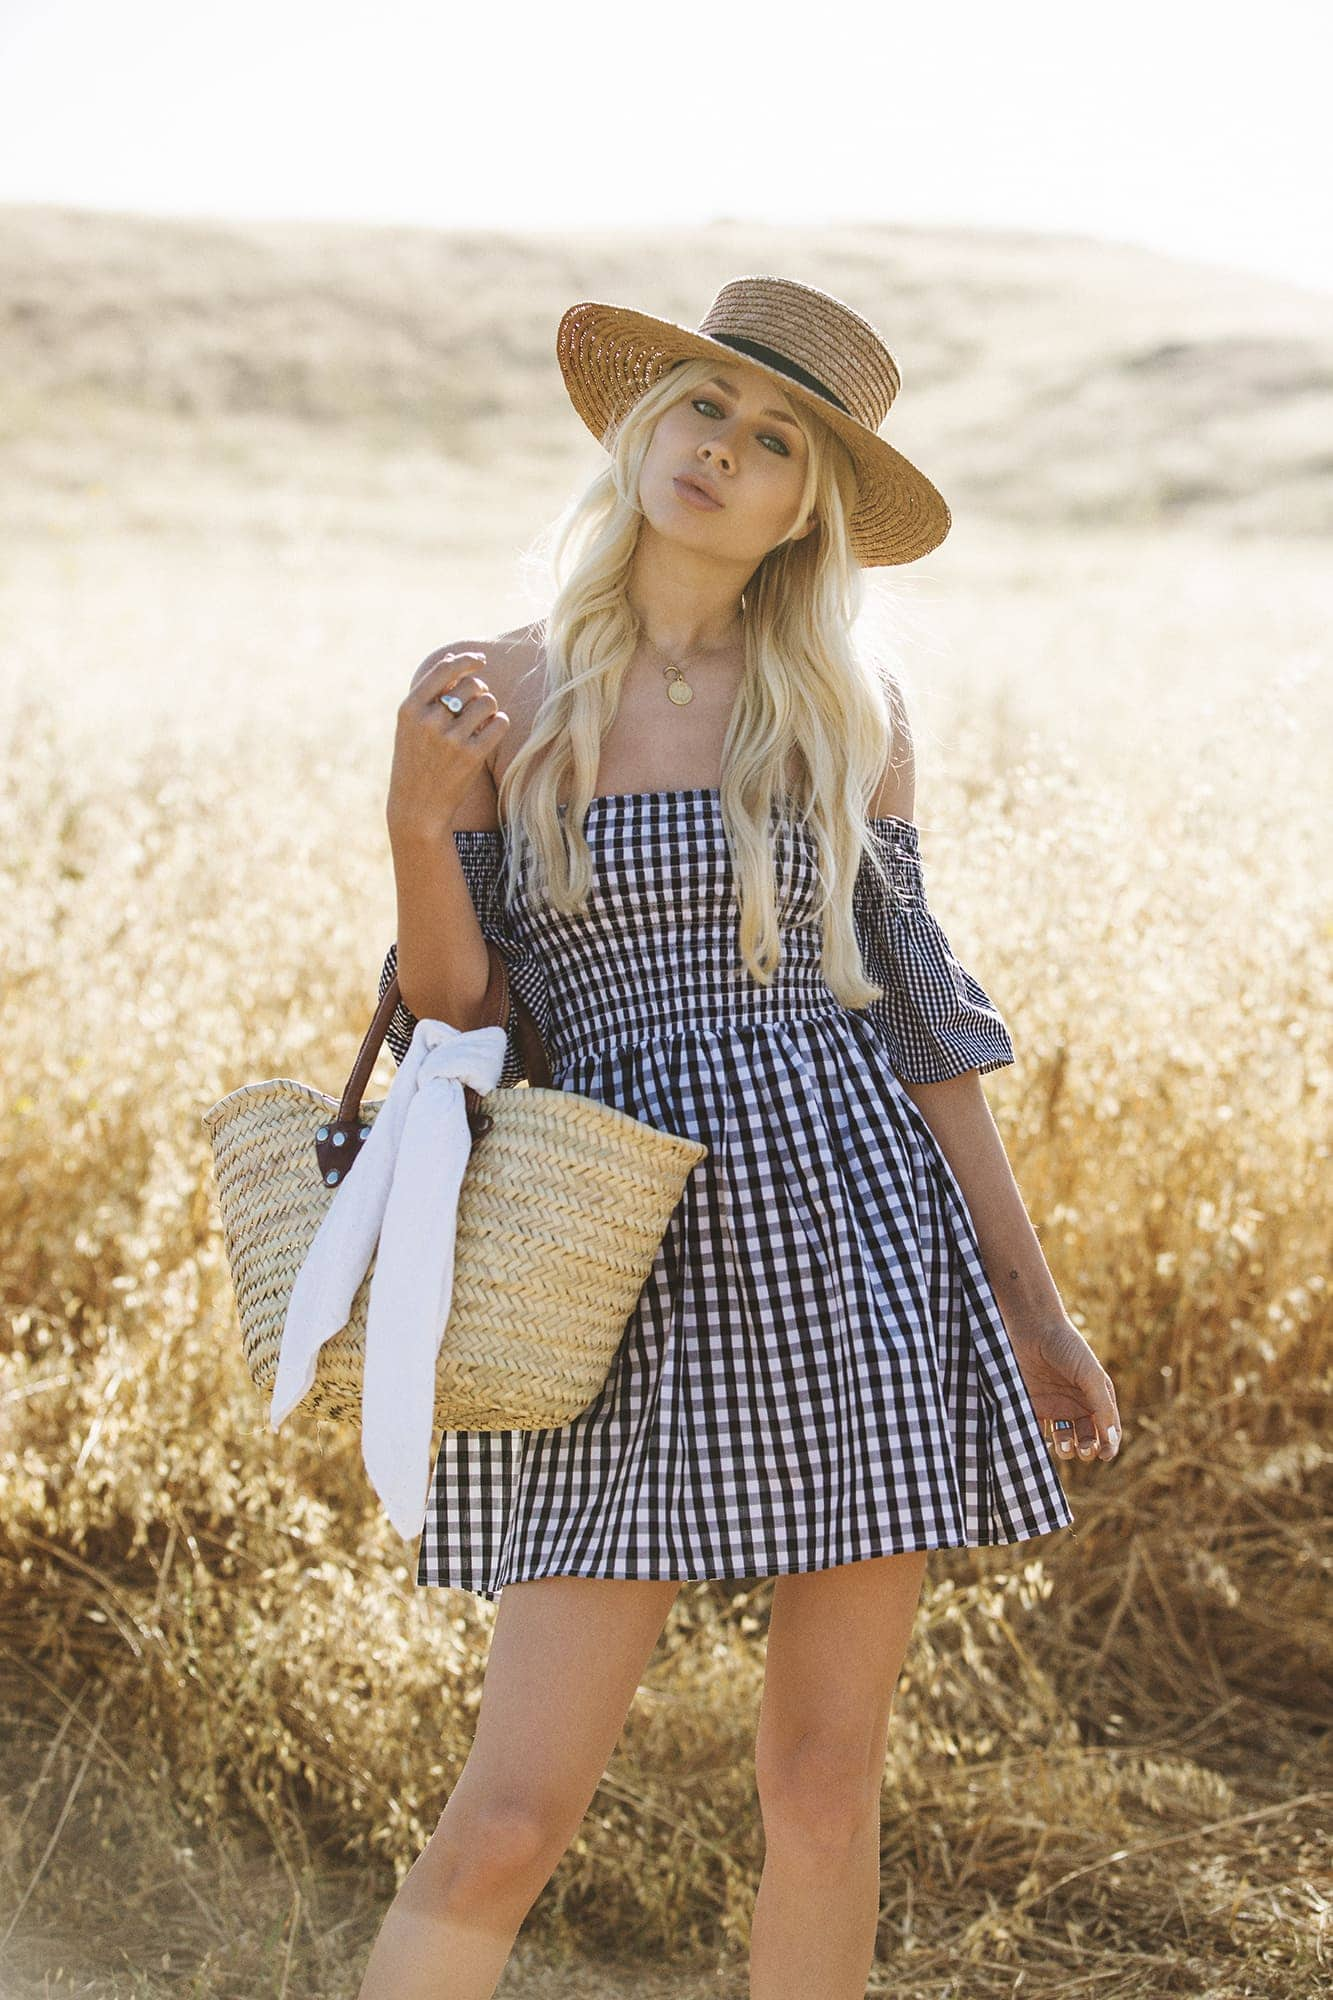 Sarah Loven wears The Vetiver Collection gingham dress